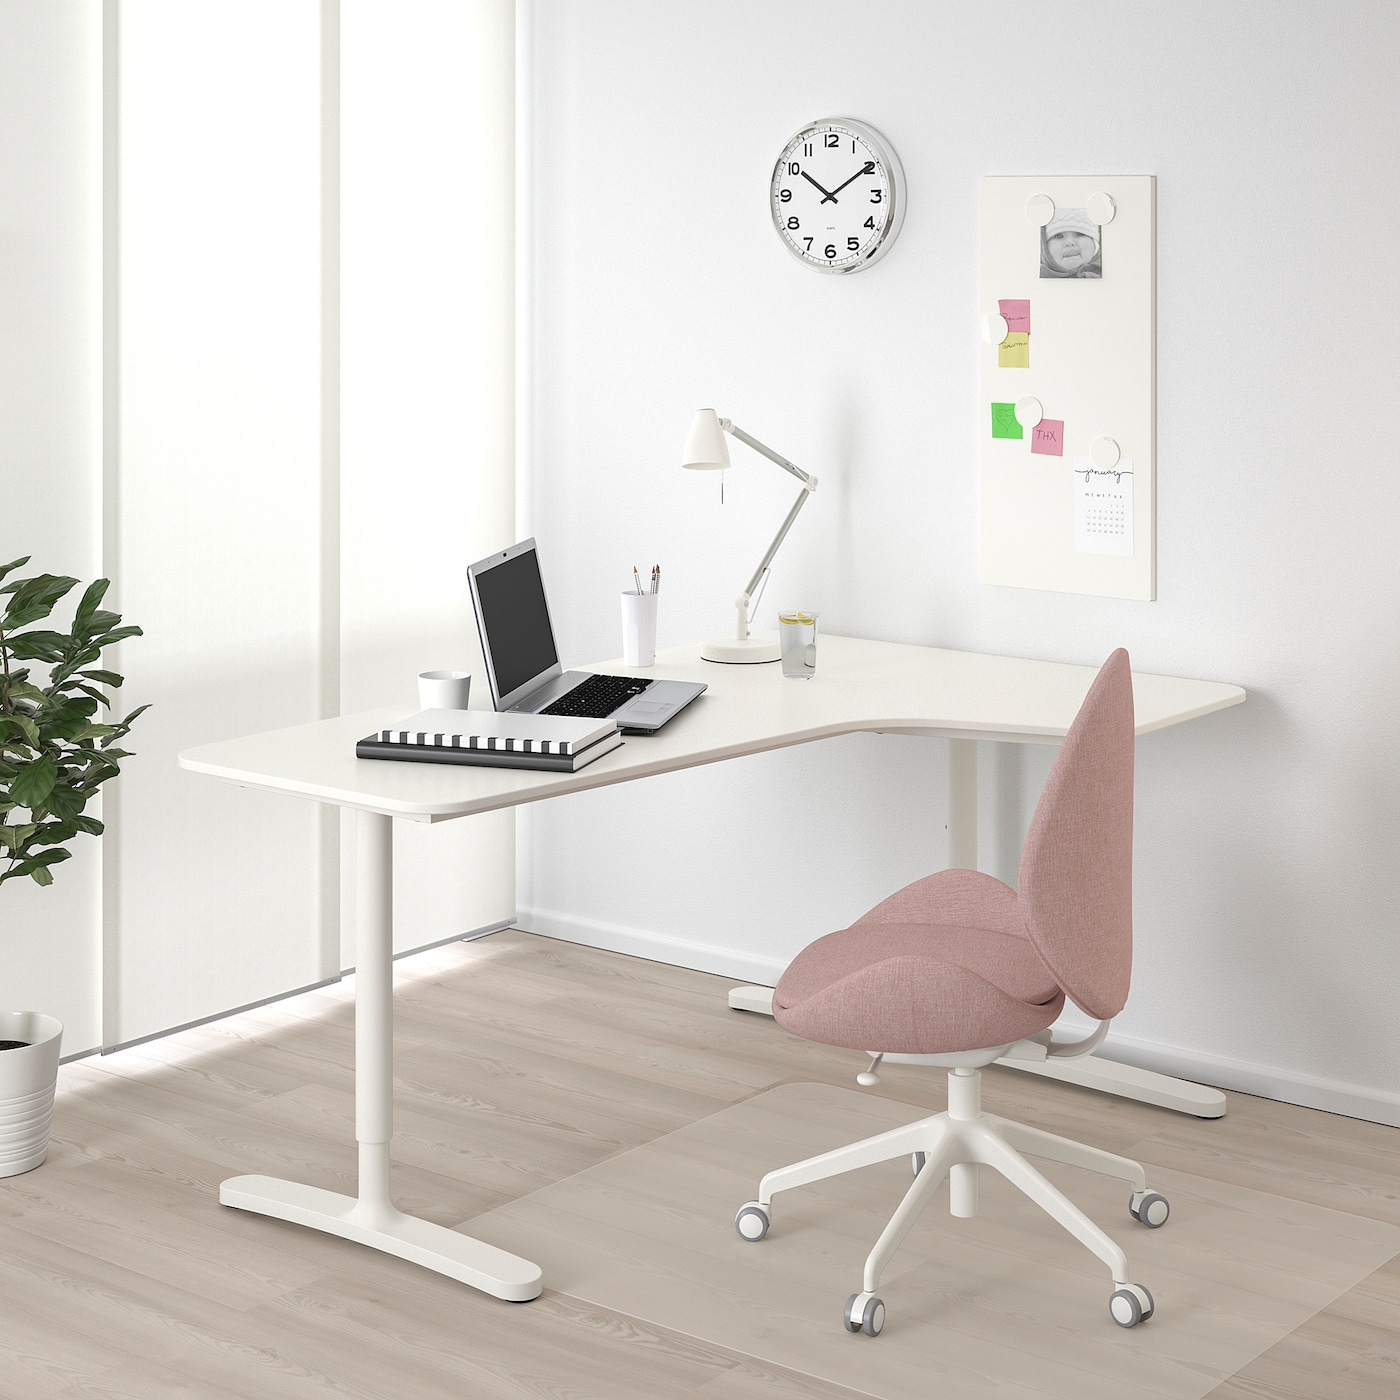 BEKANT Corner desk right, white, 160x110 cm